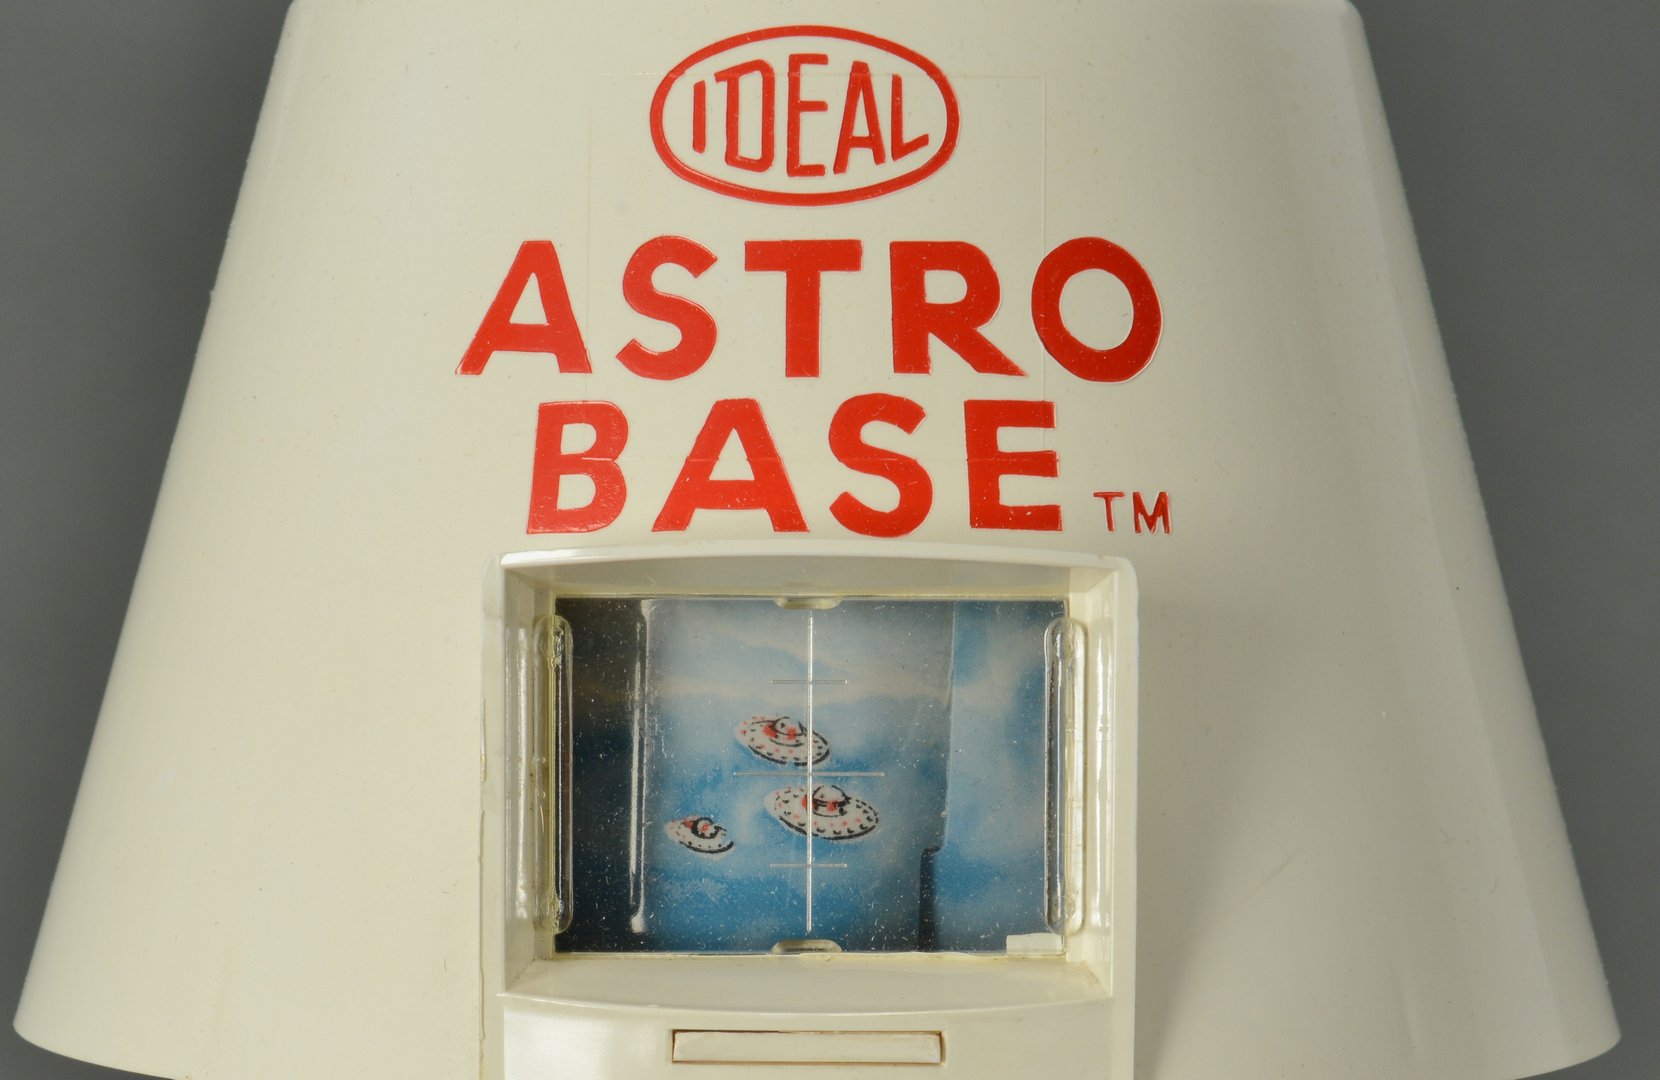 Lot 3088321: 1961 Ideal Astro Base & Count Down